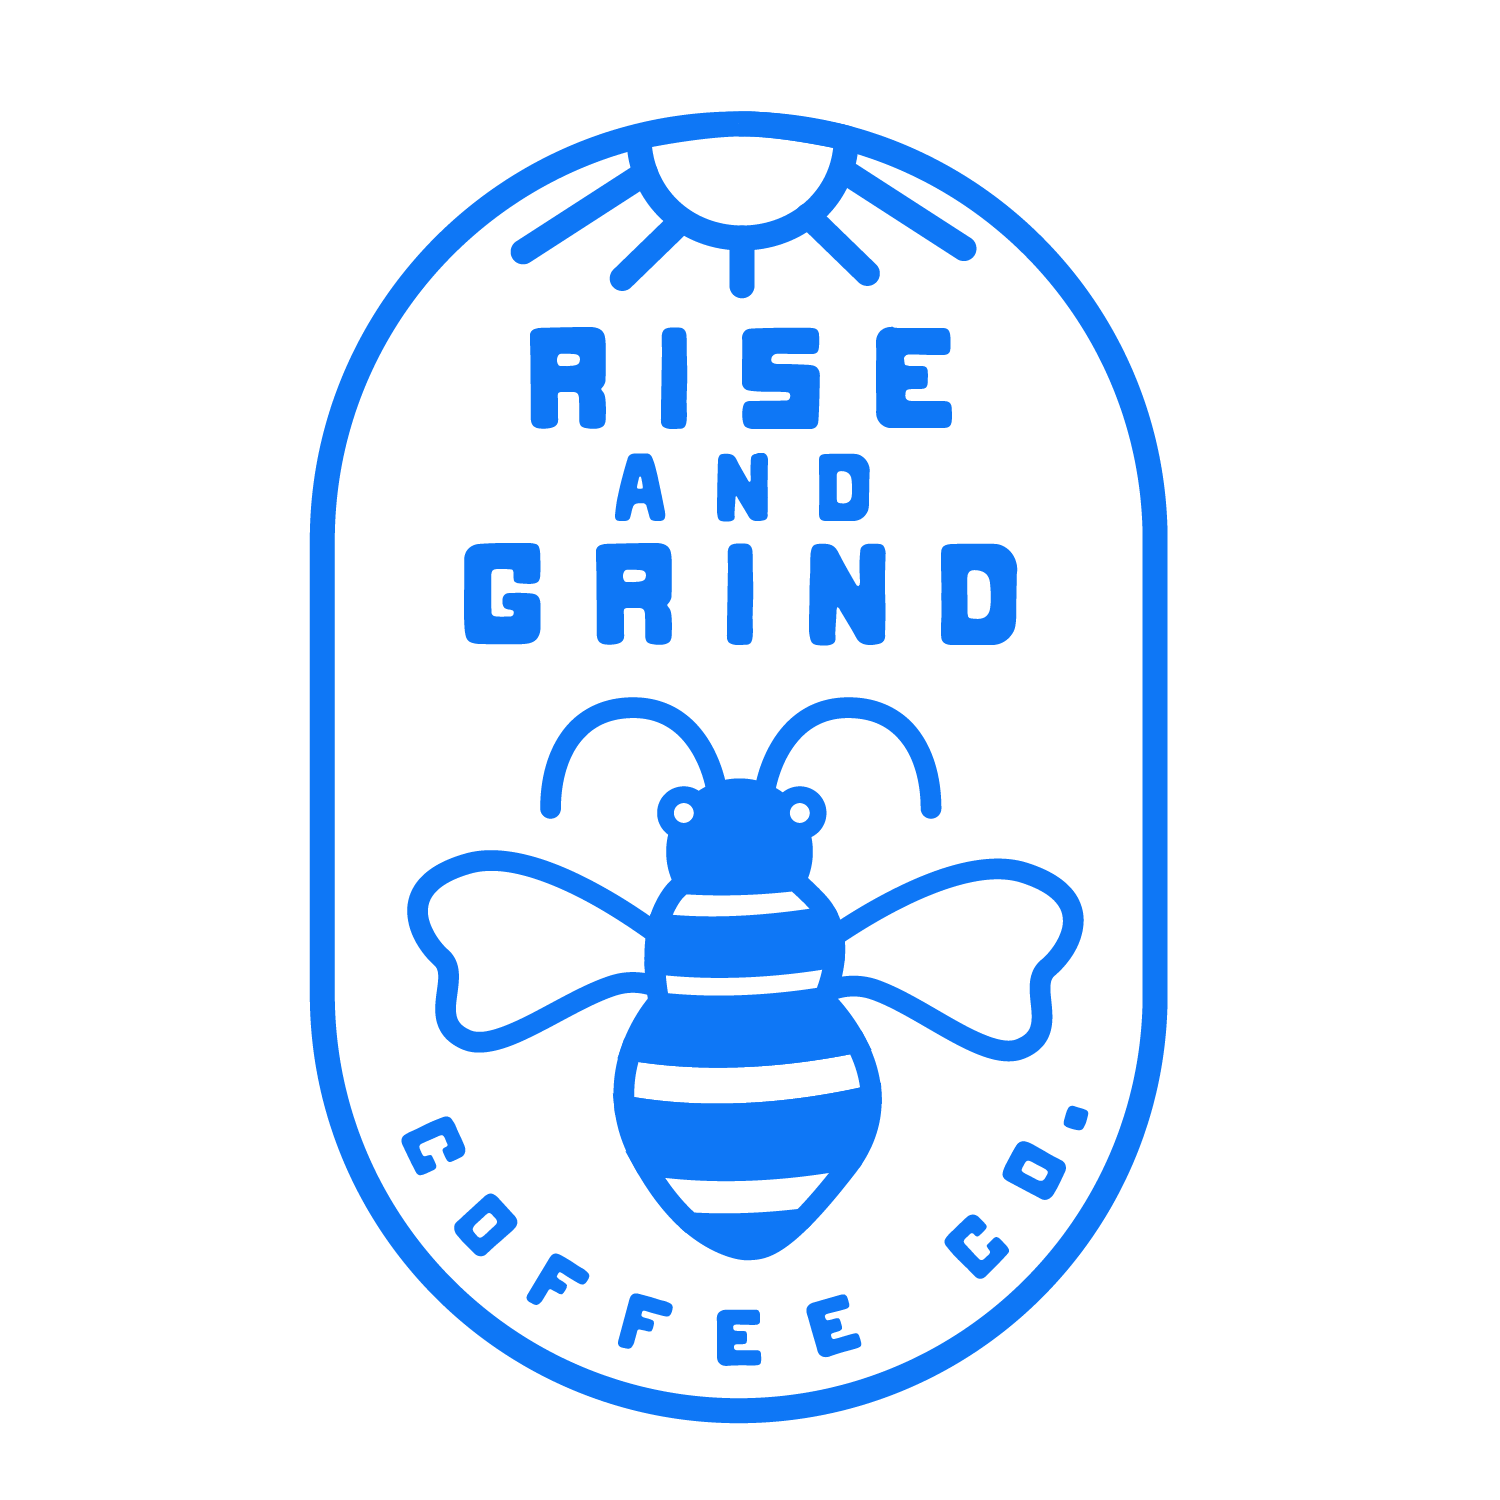 Rise & Grind coffee company for hipster teens.